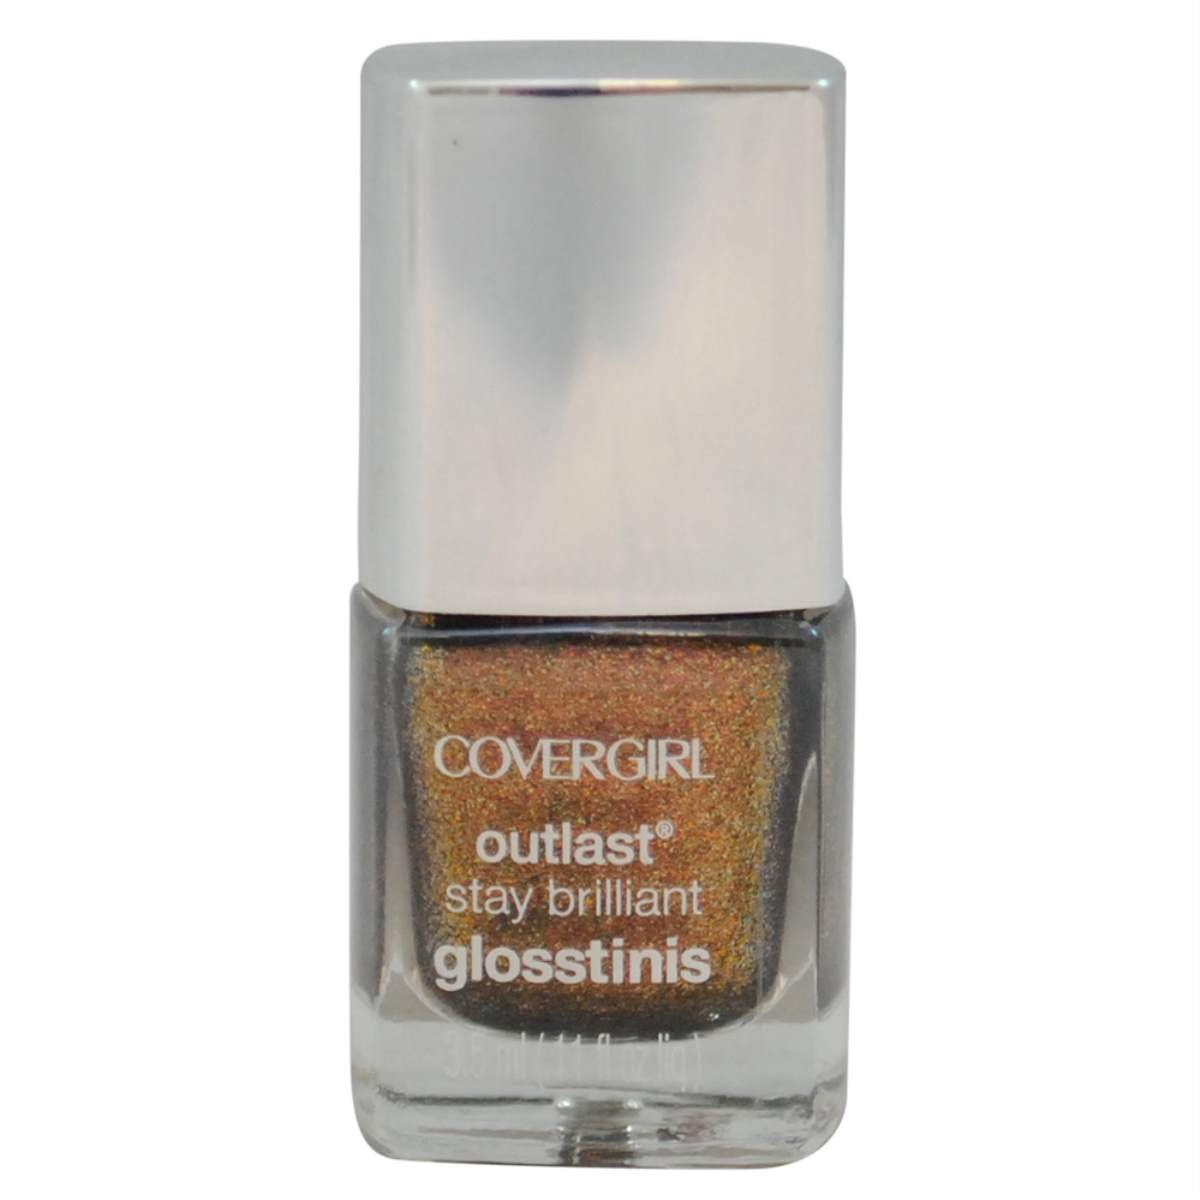 Covergirl Outlast Glosstinis Capitol Collection Nail Gloss 630 Seared Bronze